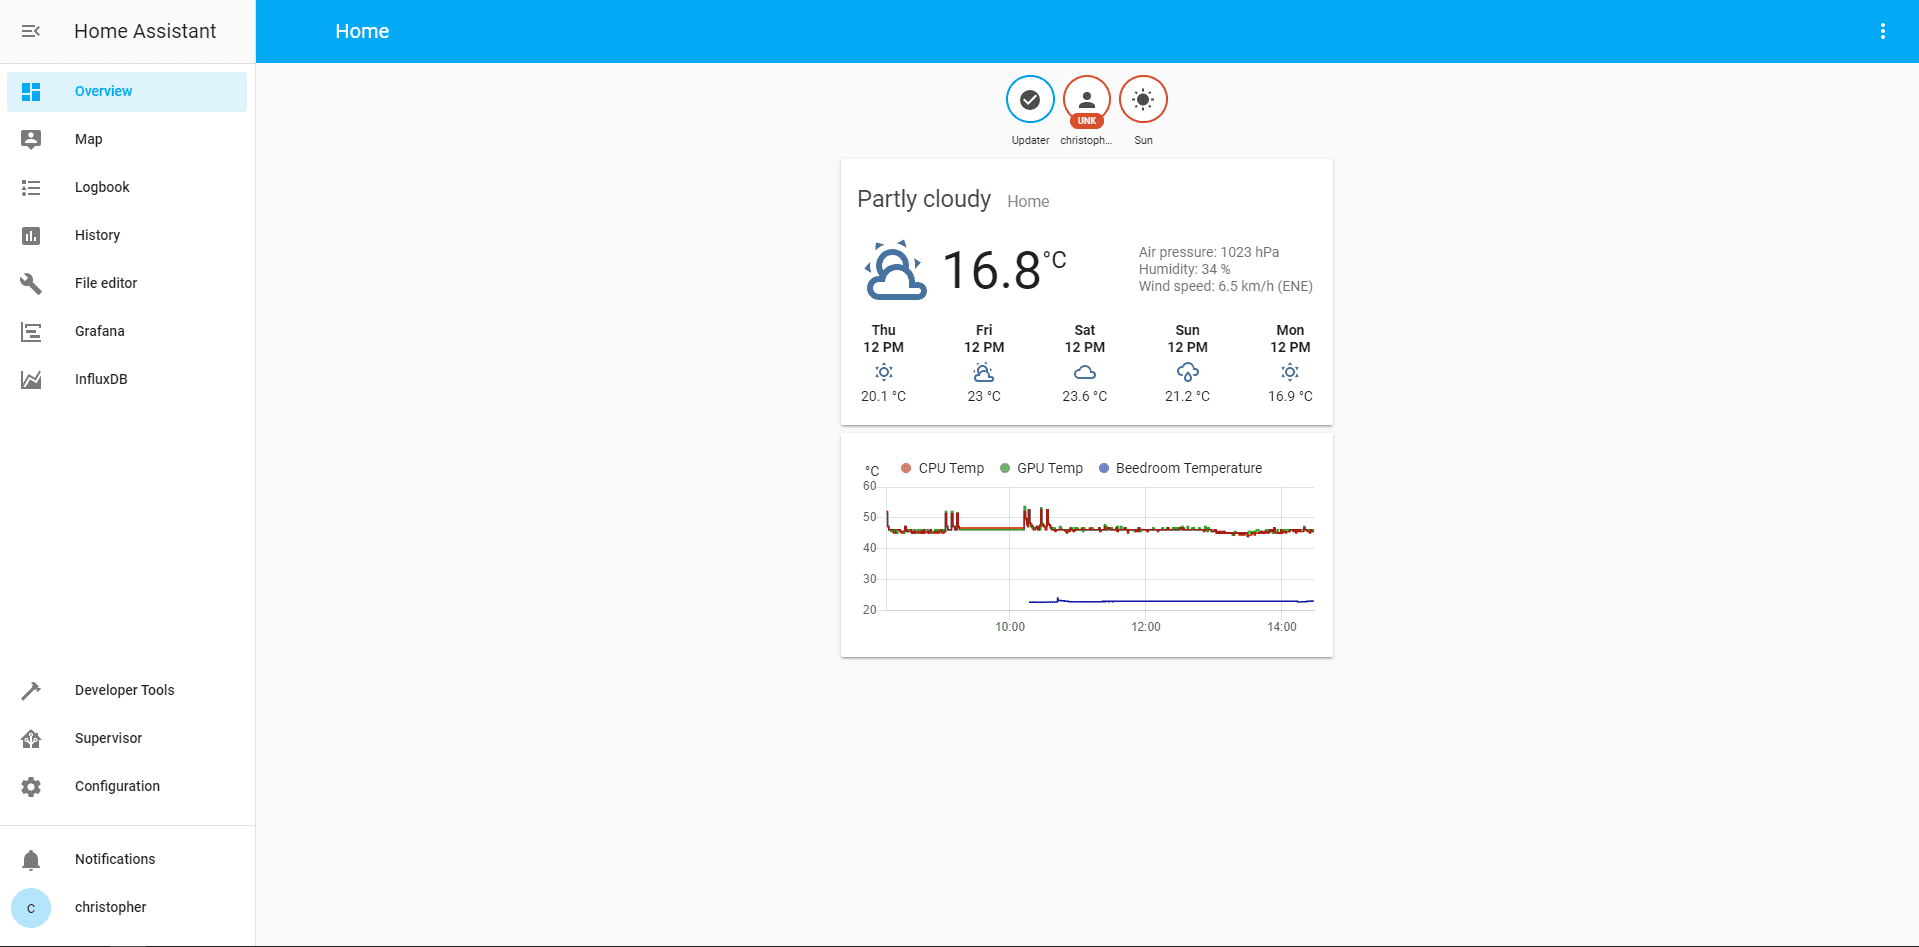 Home Assistant UI 5